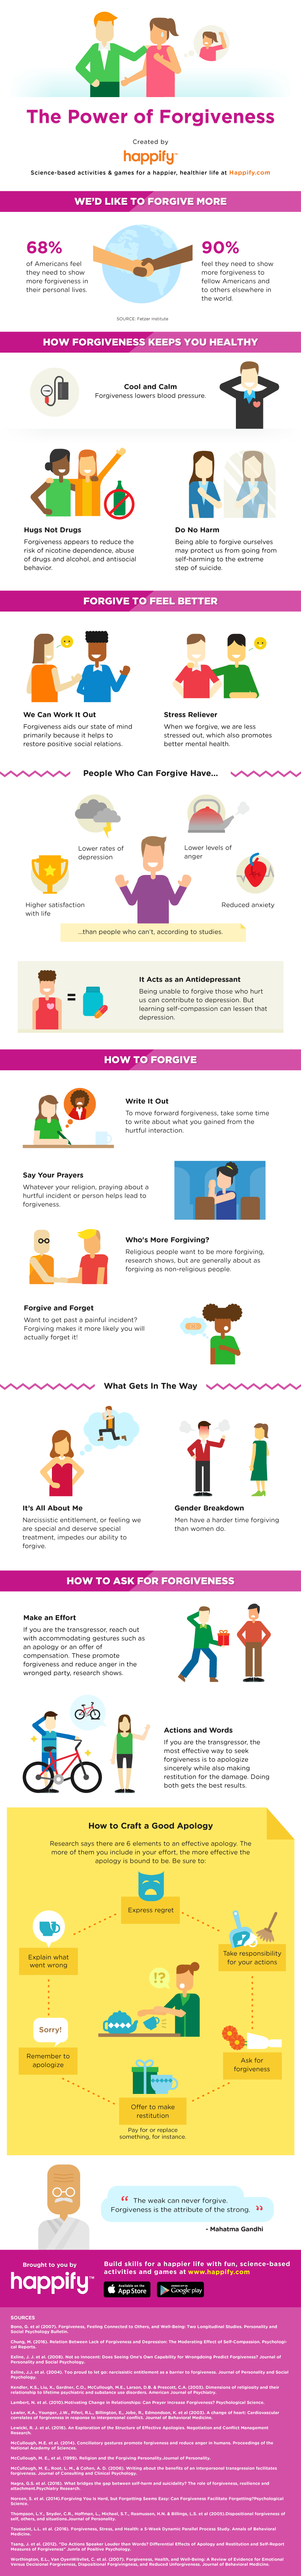 The power of Forgiveness #infographic